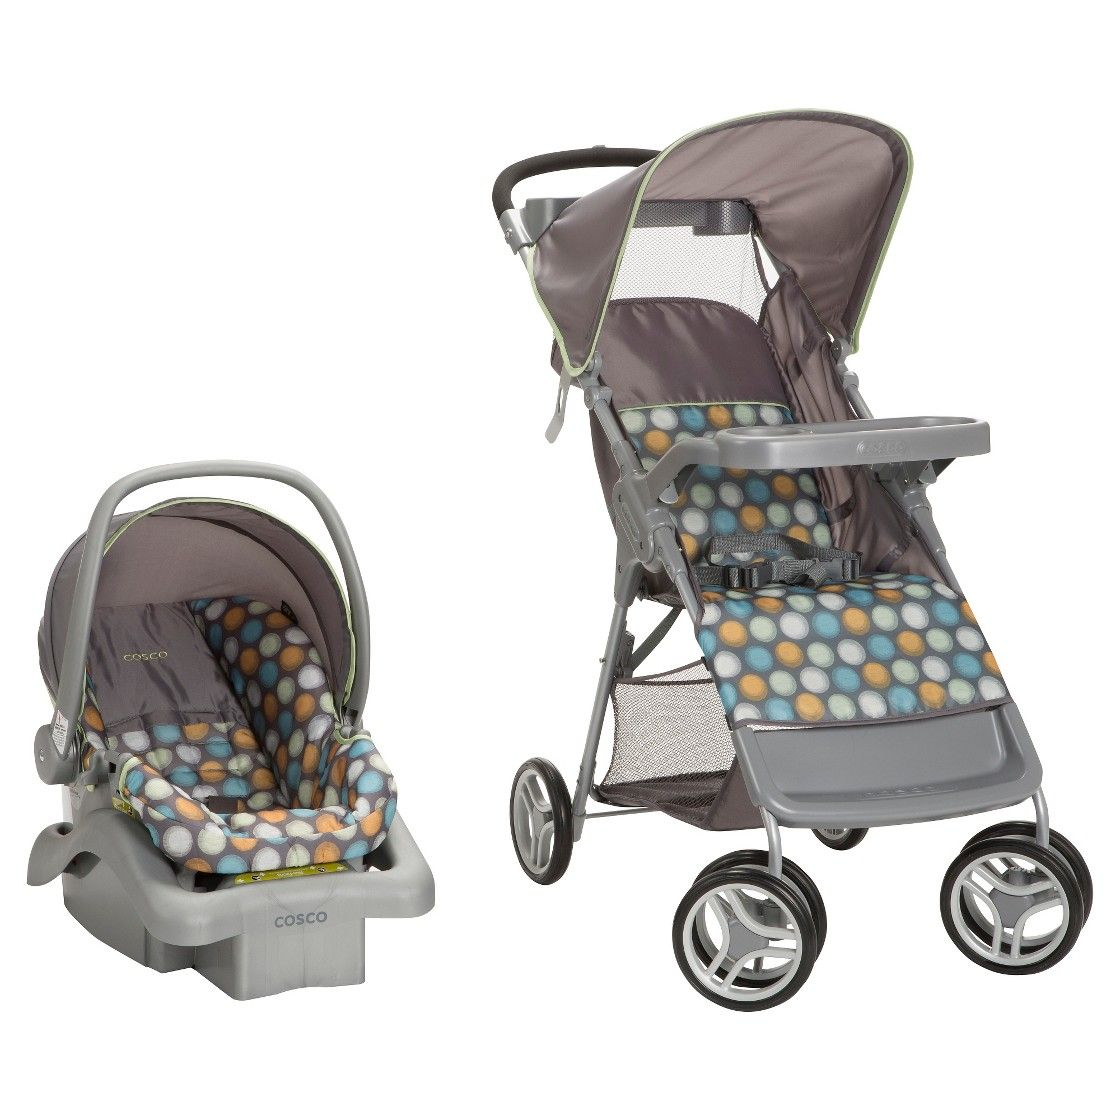 Cosco Lift Travel system, Baby strollers, Best baby car